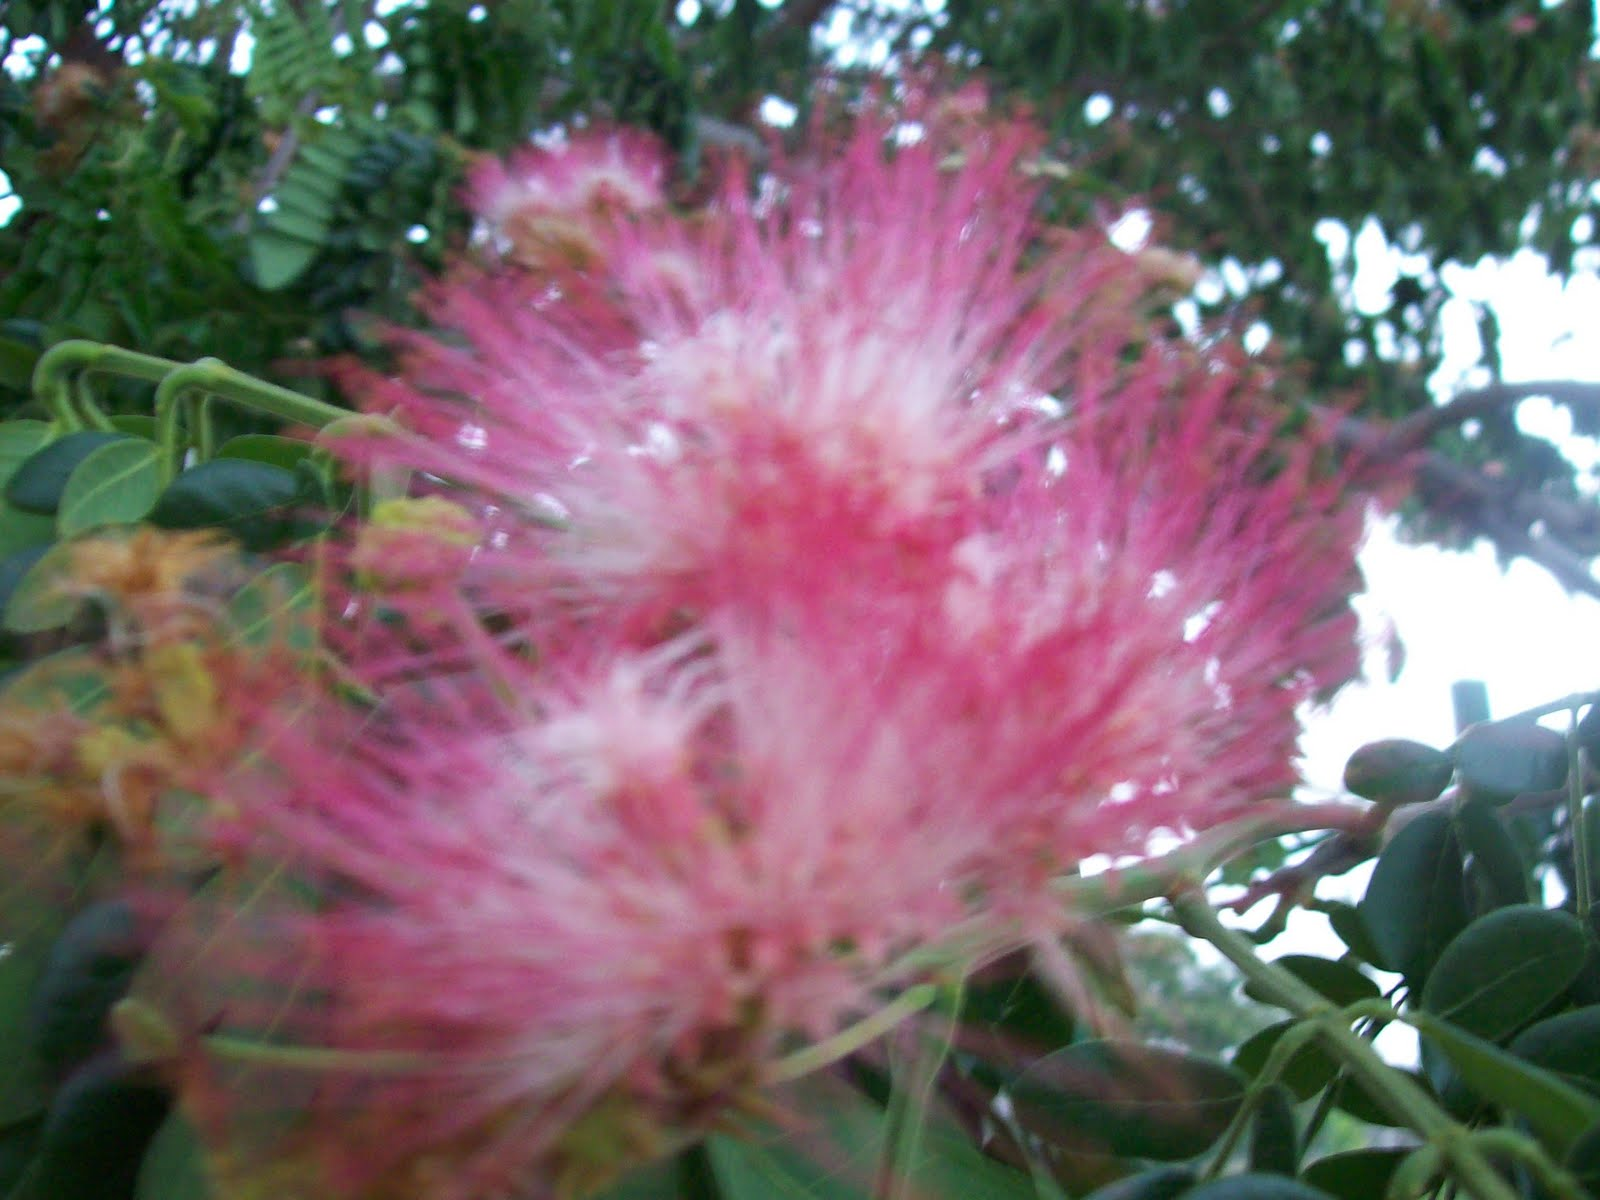 Gardentropics september 2011 pink flowers of the powderpuff plant attract bees mightylinksfo